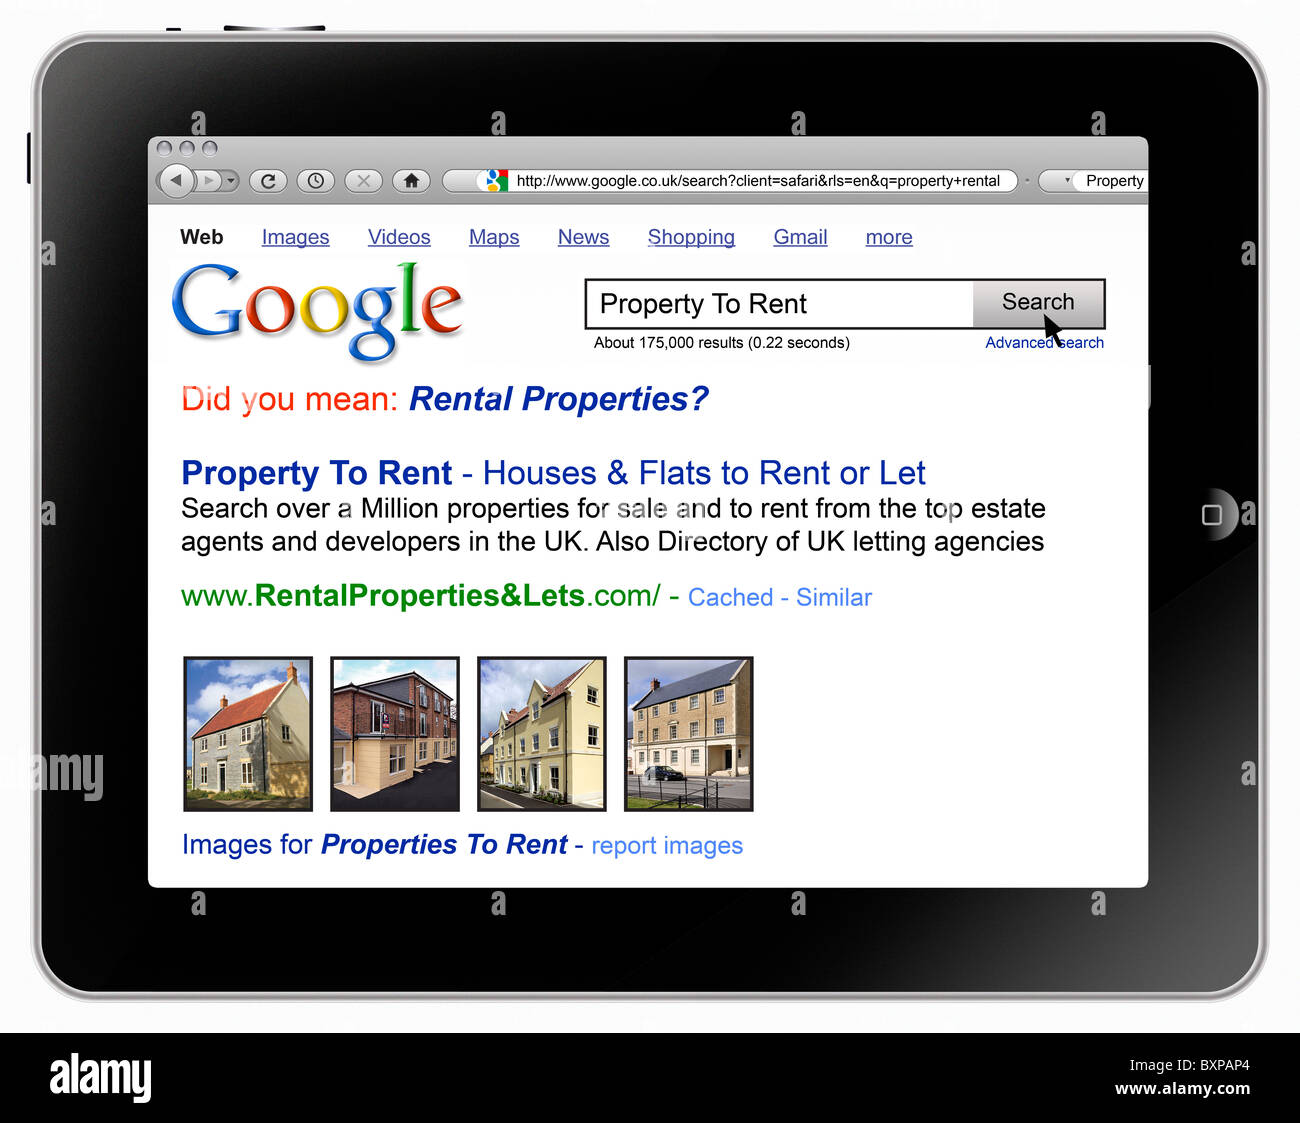 Rental Property Search Engine: Apple IPad With Safari Browser And A Google Search For